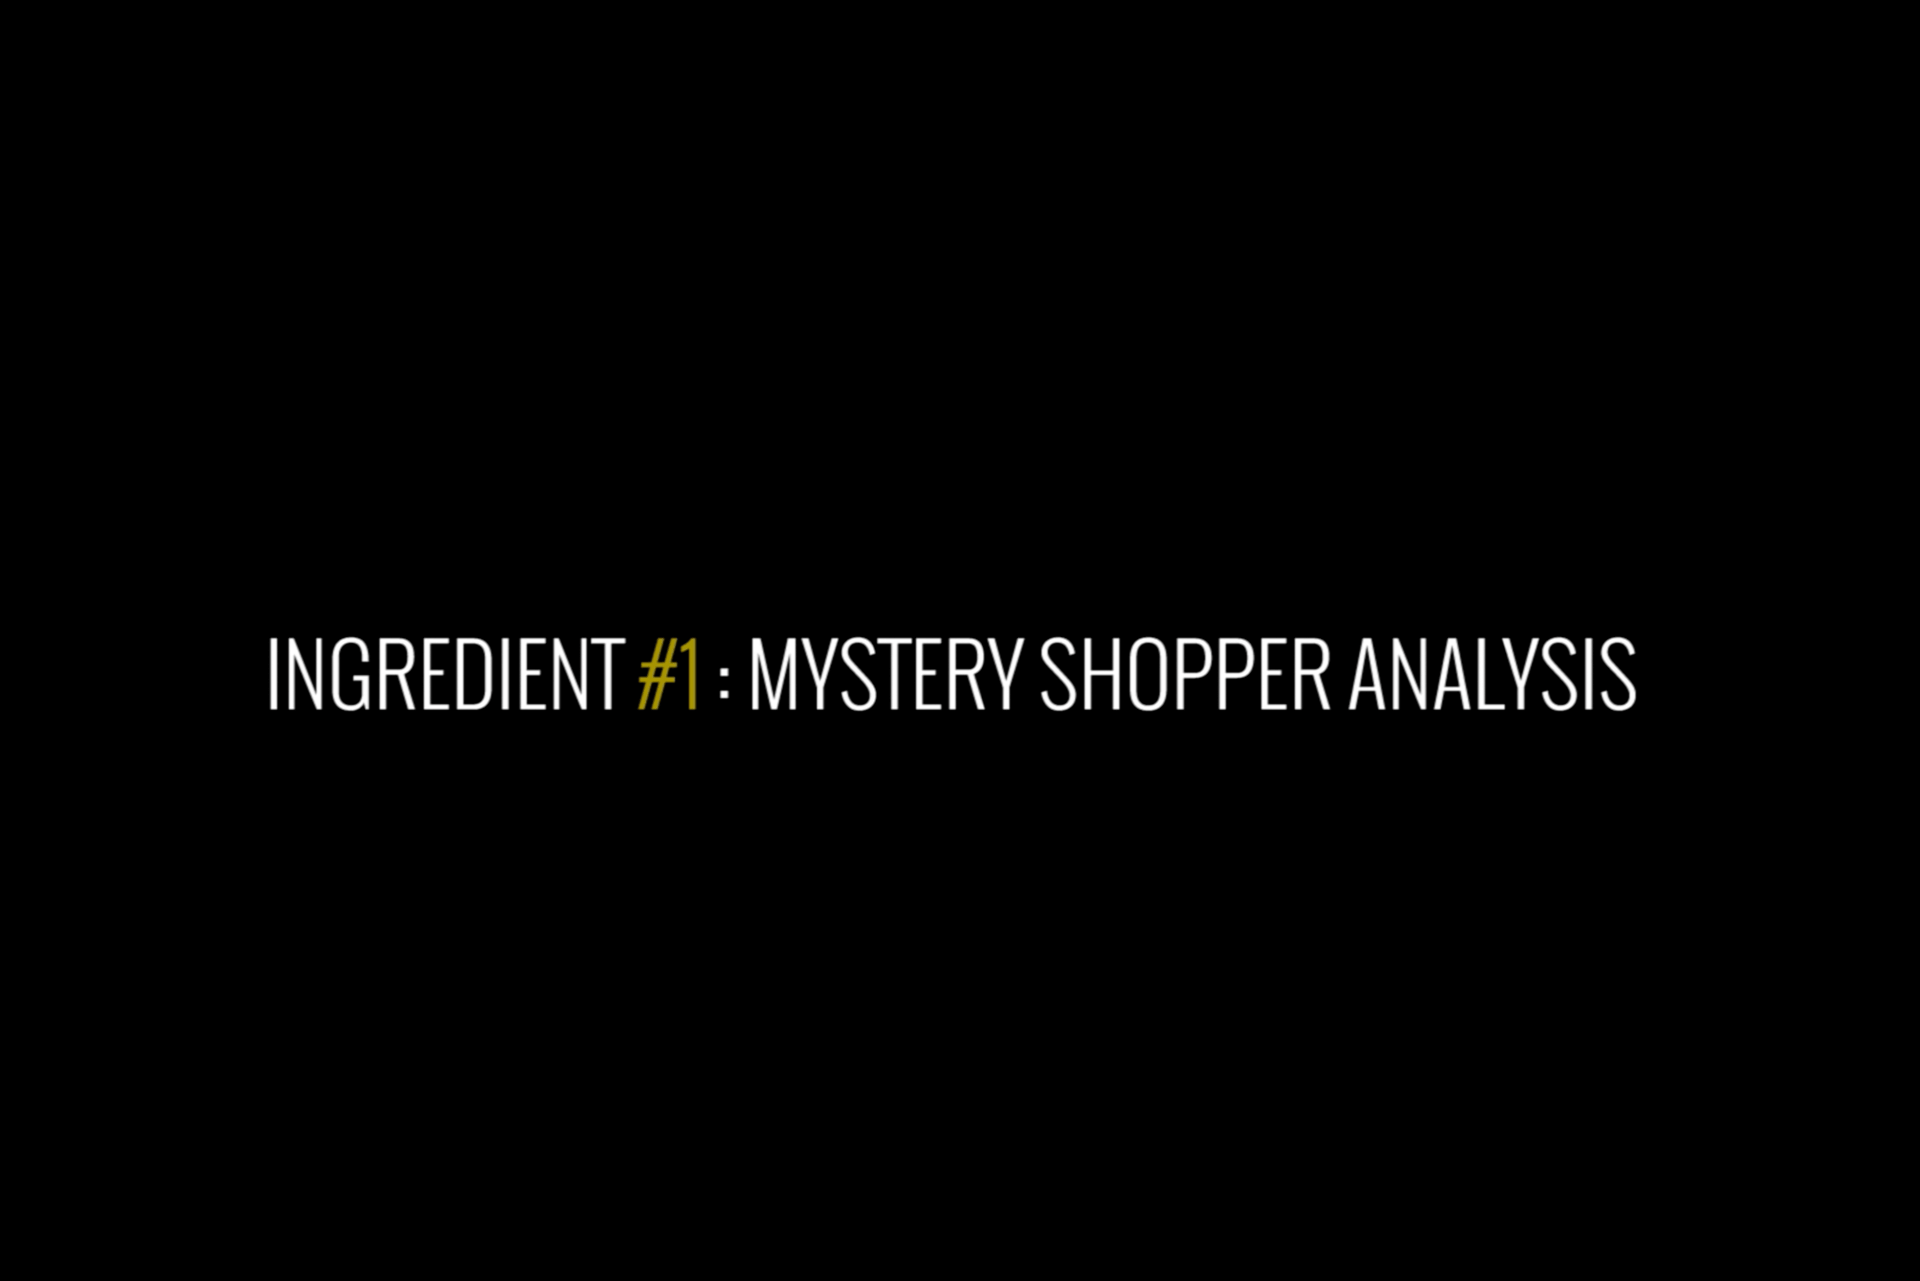 Ingredient# 1 Mystery Shopper Analysis